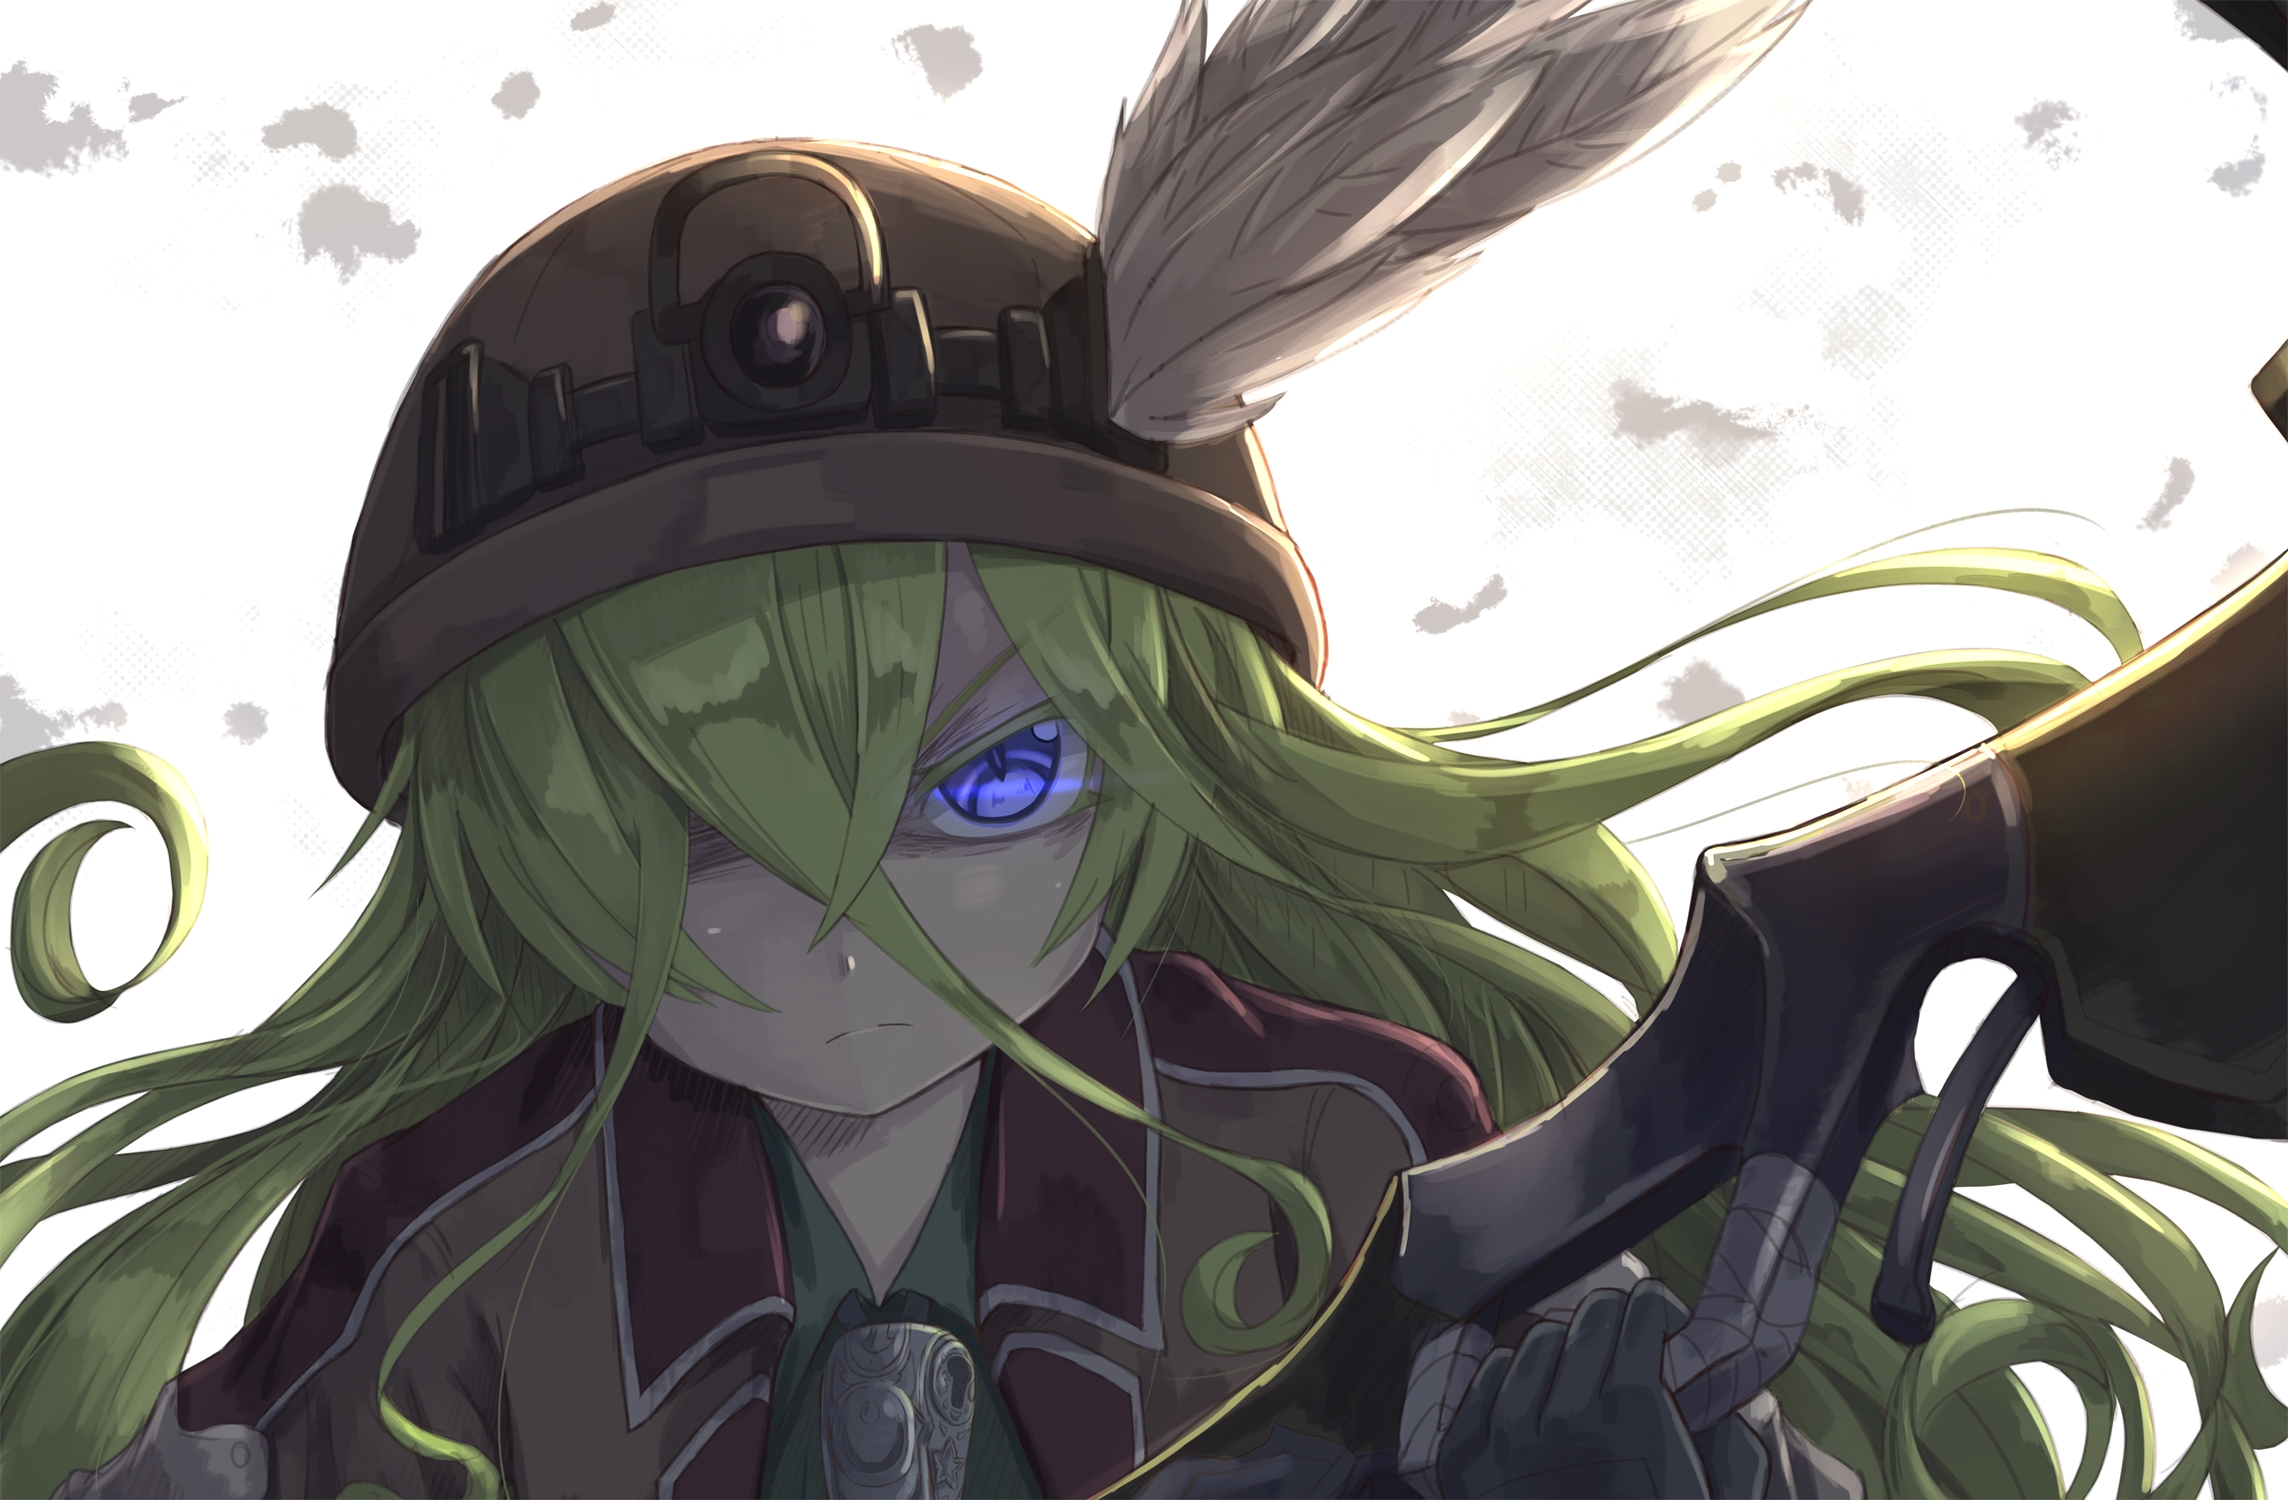 Lyza Made in Abyss Image 2152044   Zerochan Anime Image 2288x1500